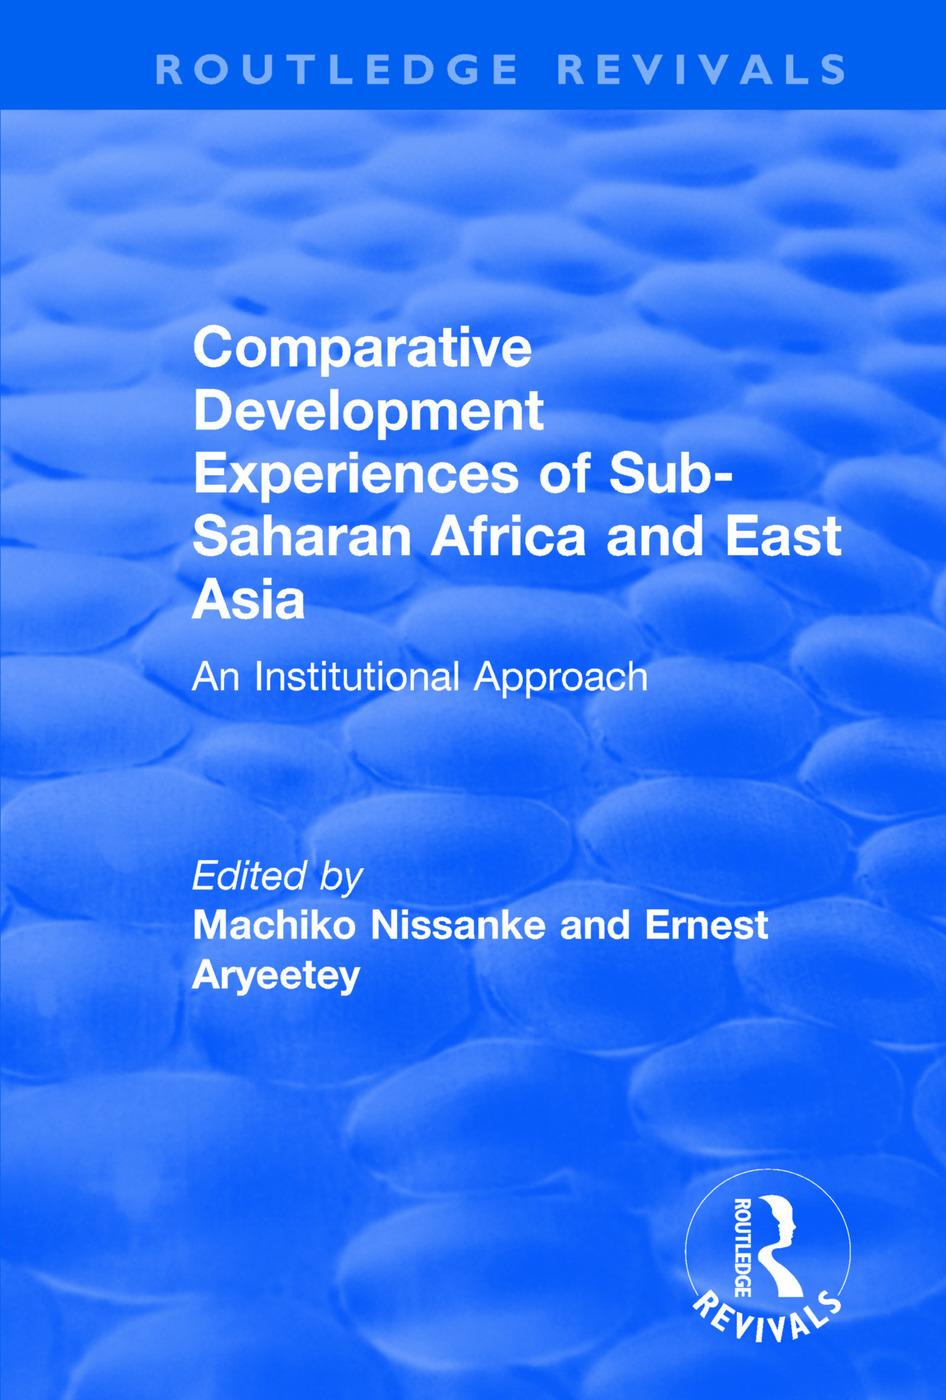 Comparative Development Experiences of Sub-Saharan Africa and East Asia